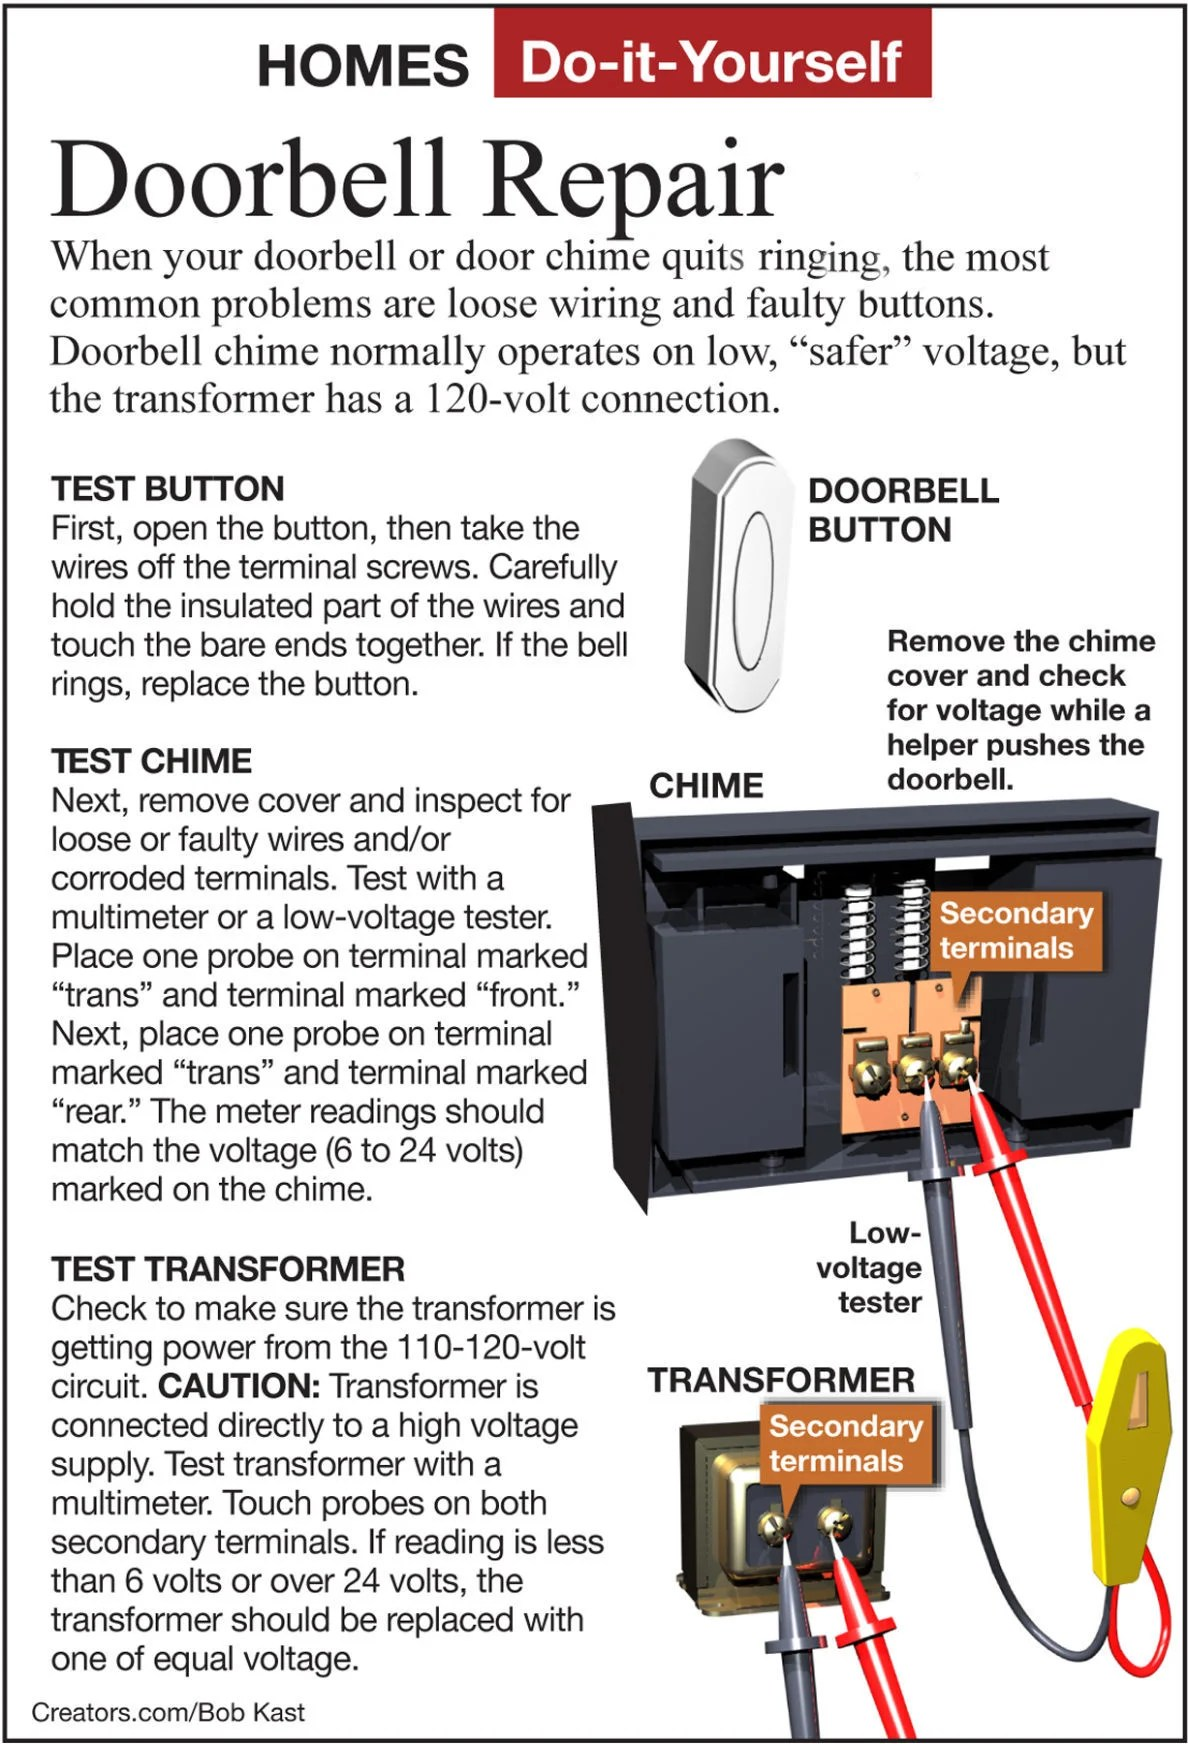 small resolution of james dulley install a louder doorbell chime siouxland homes siouxcityjournal com sc 1 st sioux city journal